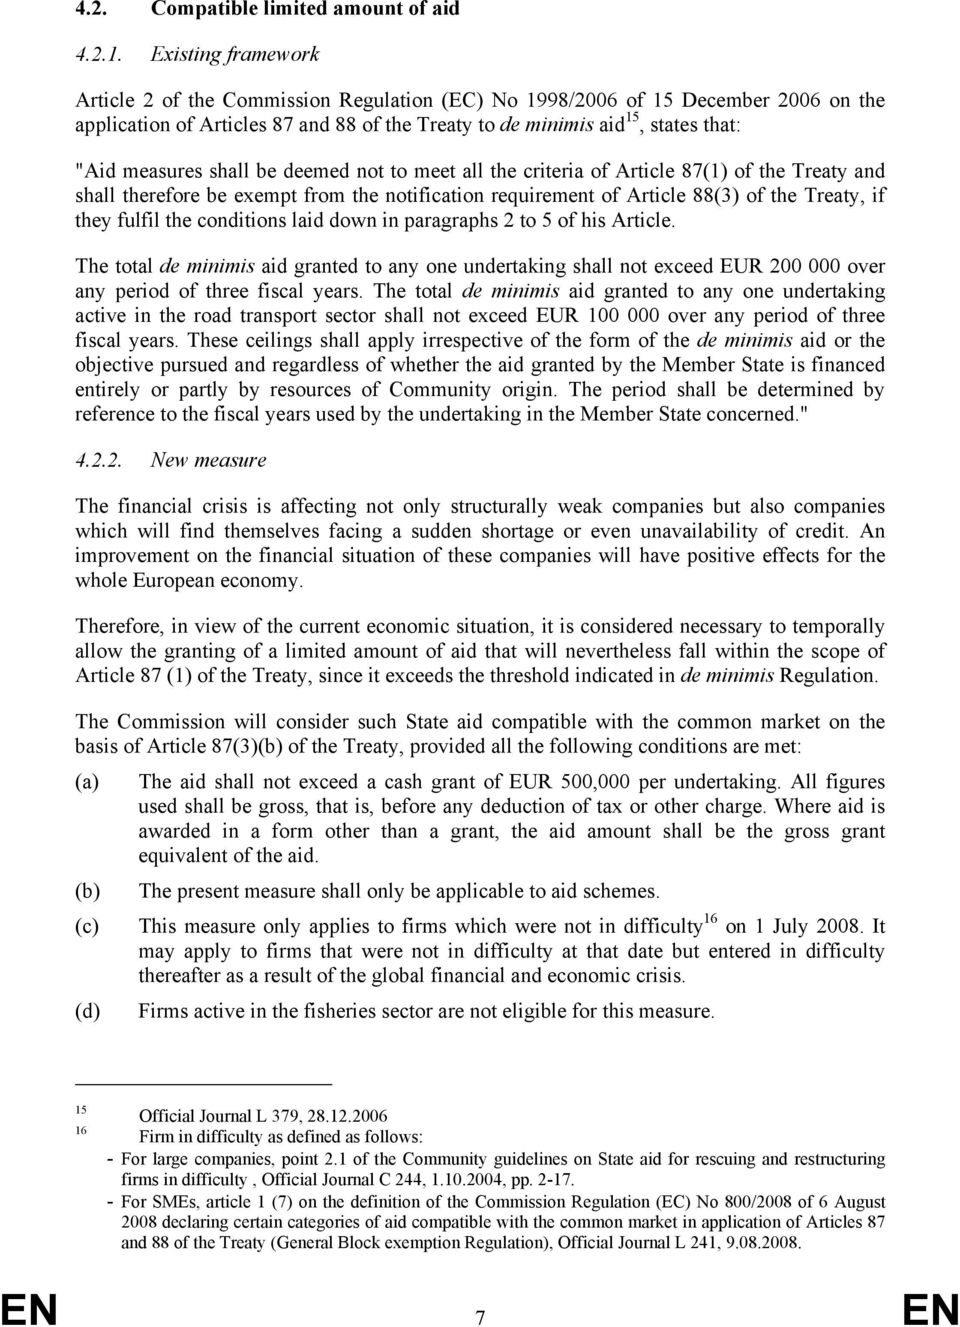 shall be deemed not to meet all the criteria of Article 87(1) of the Treaty and shall therefore be exempt from the notification requirement of Article 88(3) of the Treaty, if they fulfil the